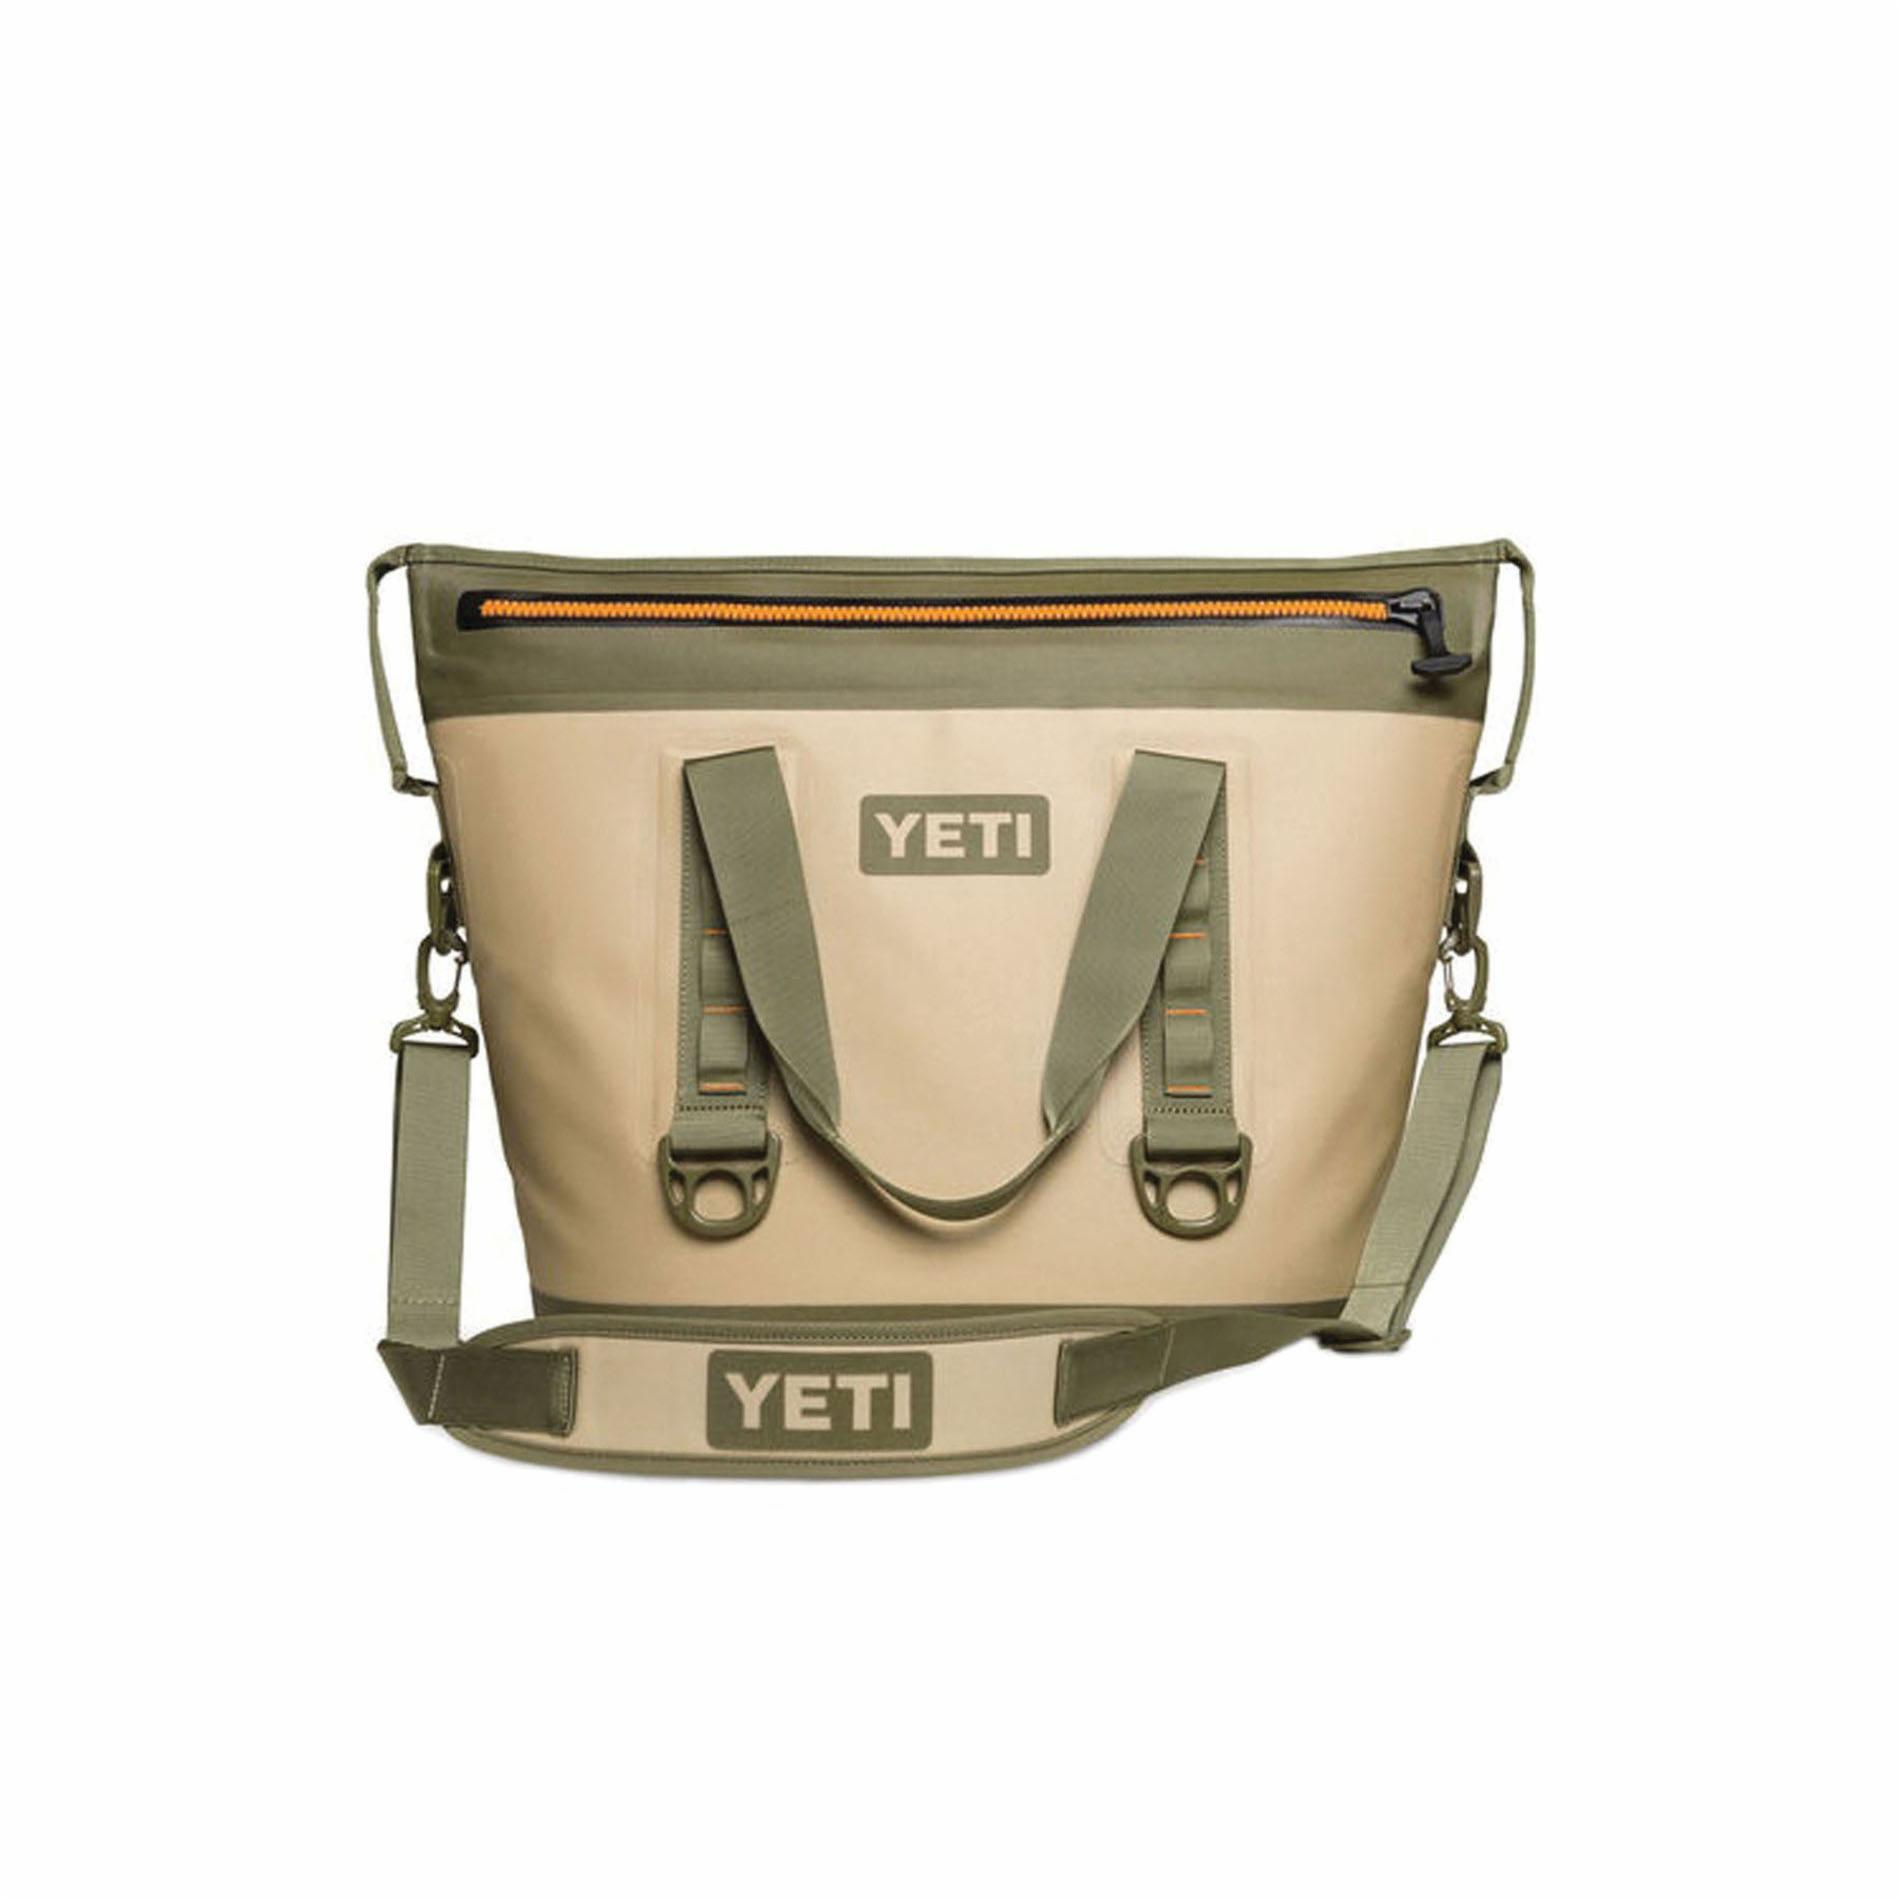 Picture of YETI YHOPT30T Soft Bag Cooler, 23 Cans Capacity, Blaze Orange/Field Tan